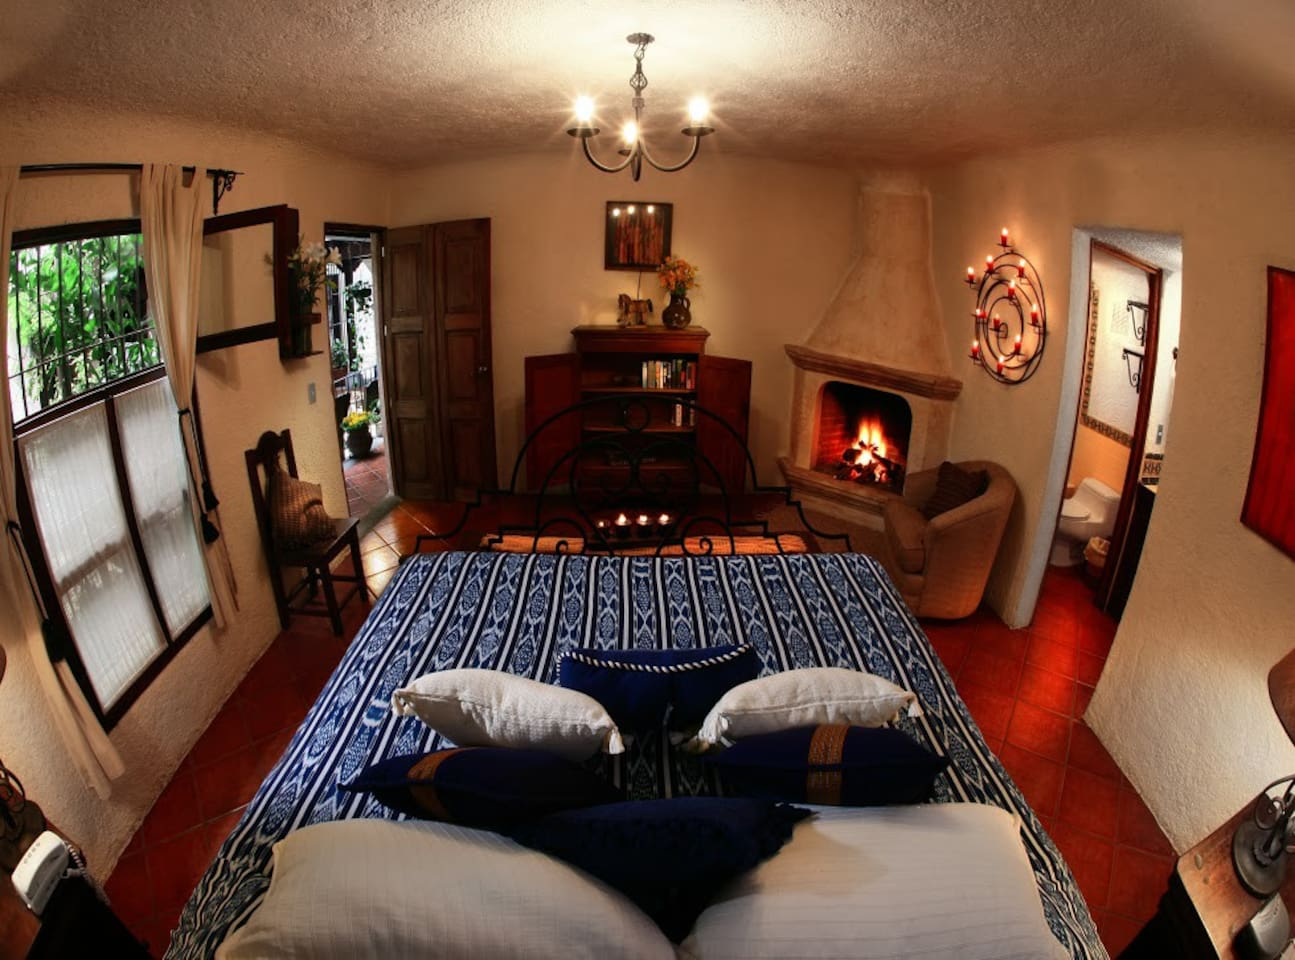 Romantic room with one king bed, fireplace, tv, private bathroom.